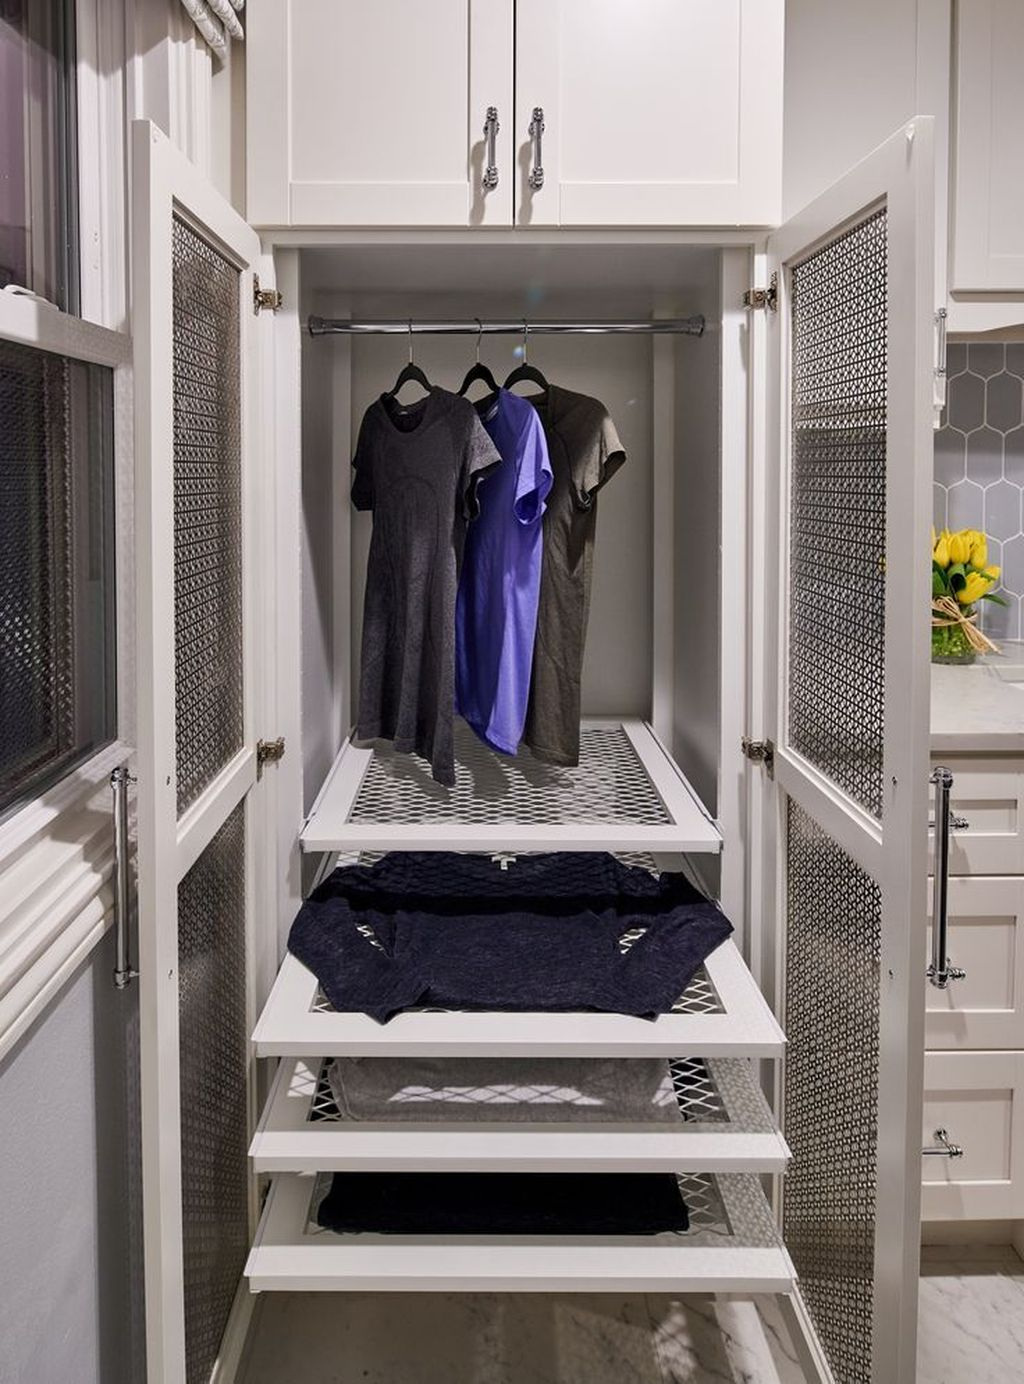 Favored Laundry Room Organization Ideas To Try 06